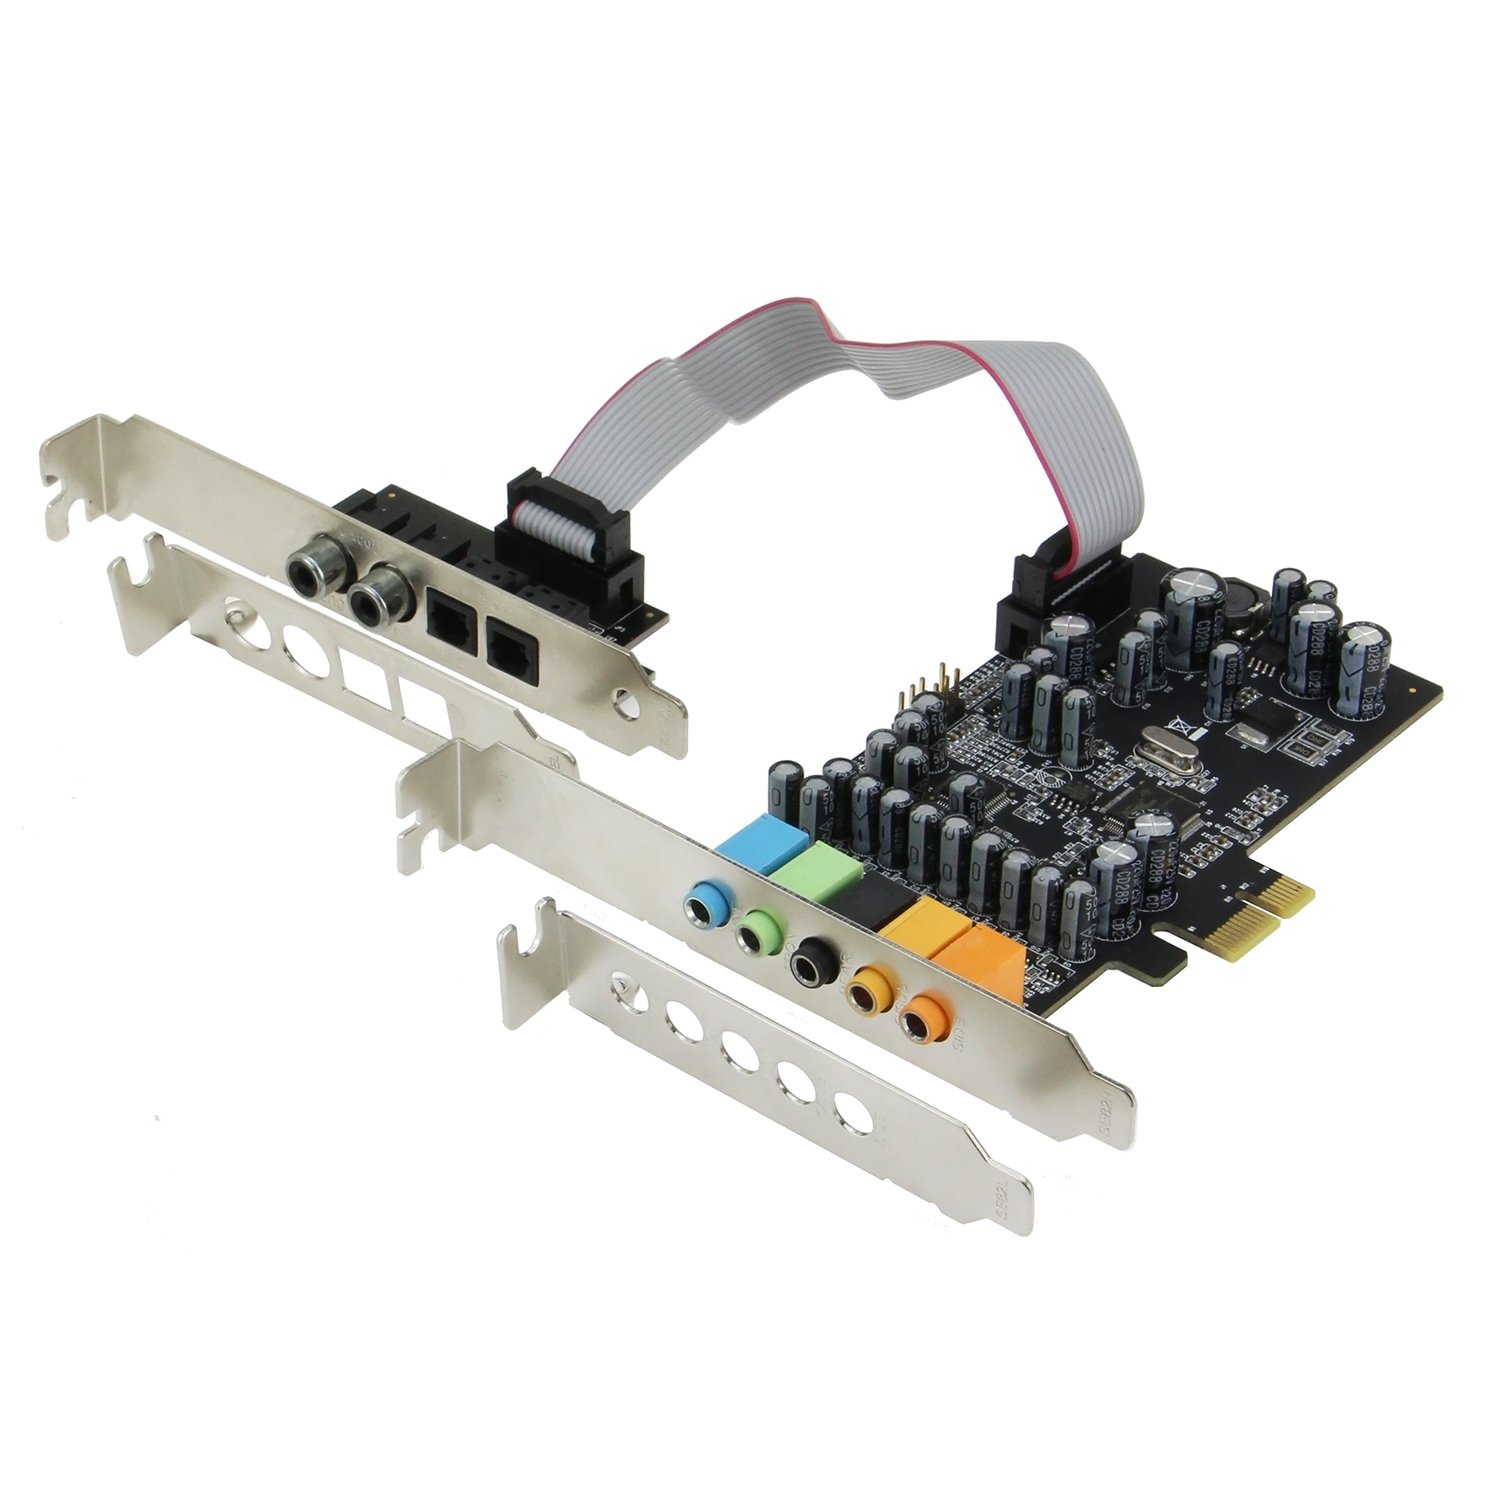 SEDNA - SE-PCIE-SC-10 PCIe 7.1 Channel Sound card ( CM8828 + CM9882A ) with SPDIF Bracket ( Standard and Low Profile brackets are included )